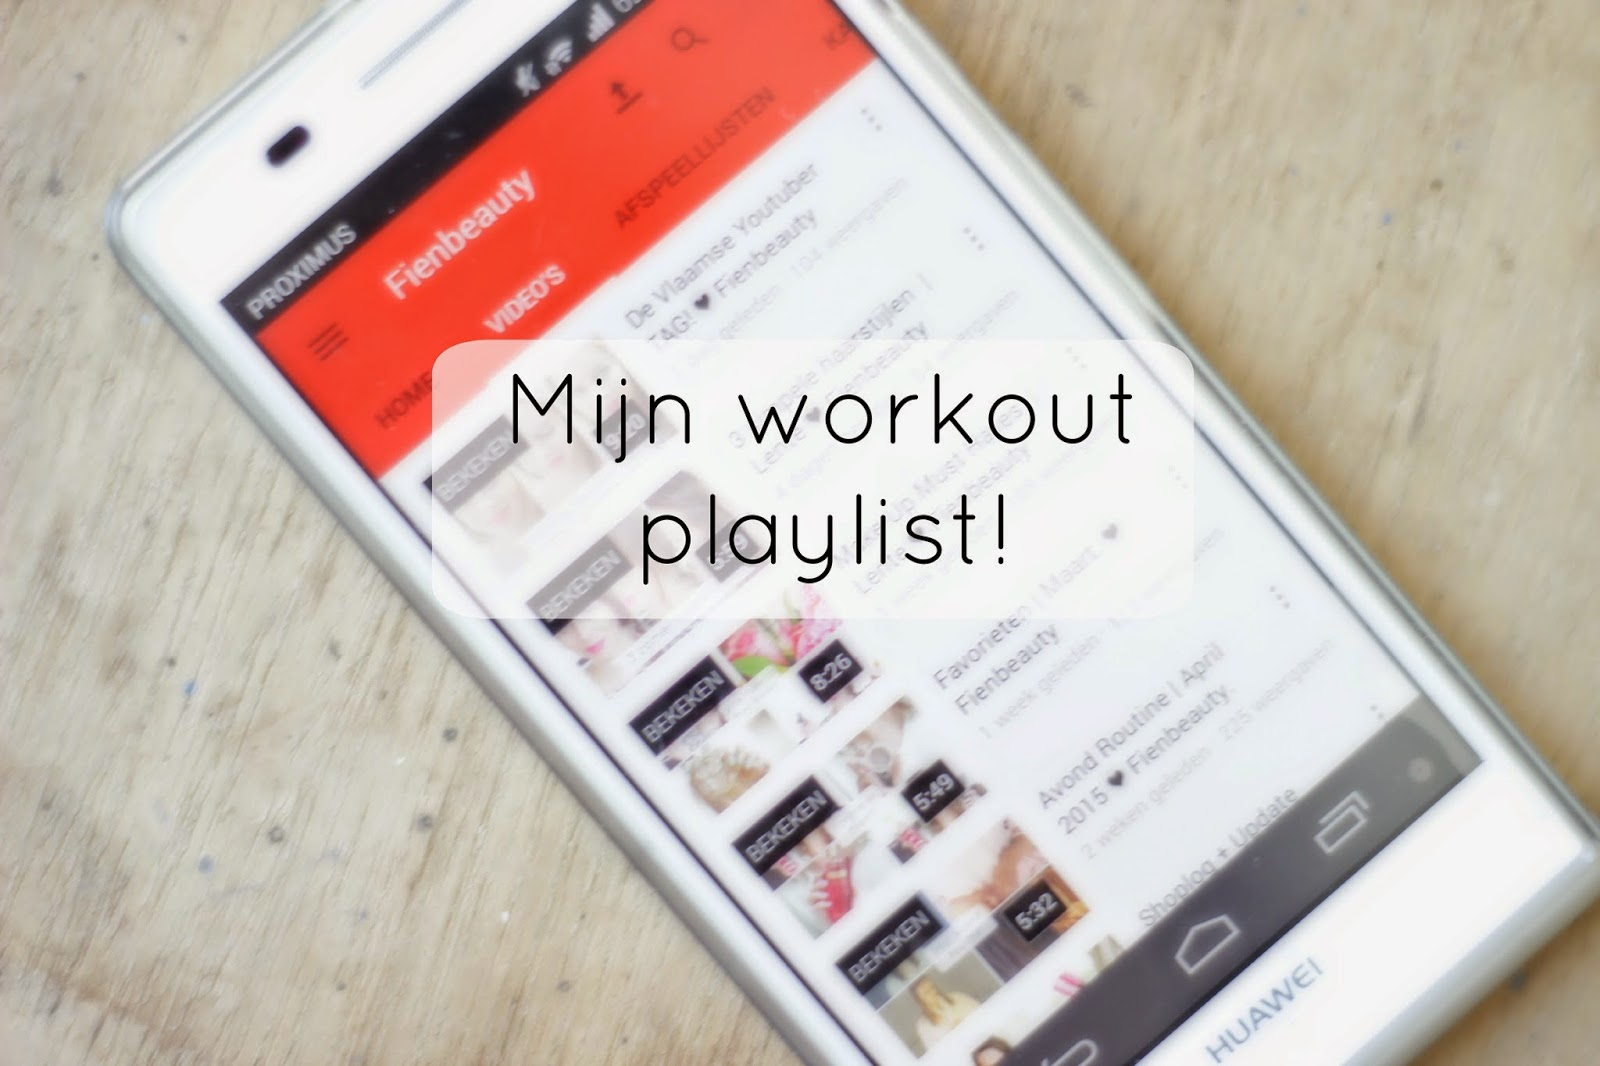 mijn workout playlist